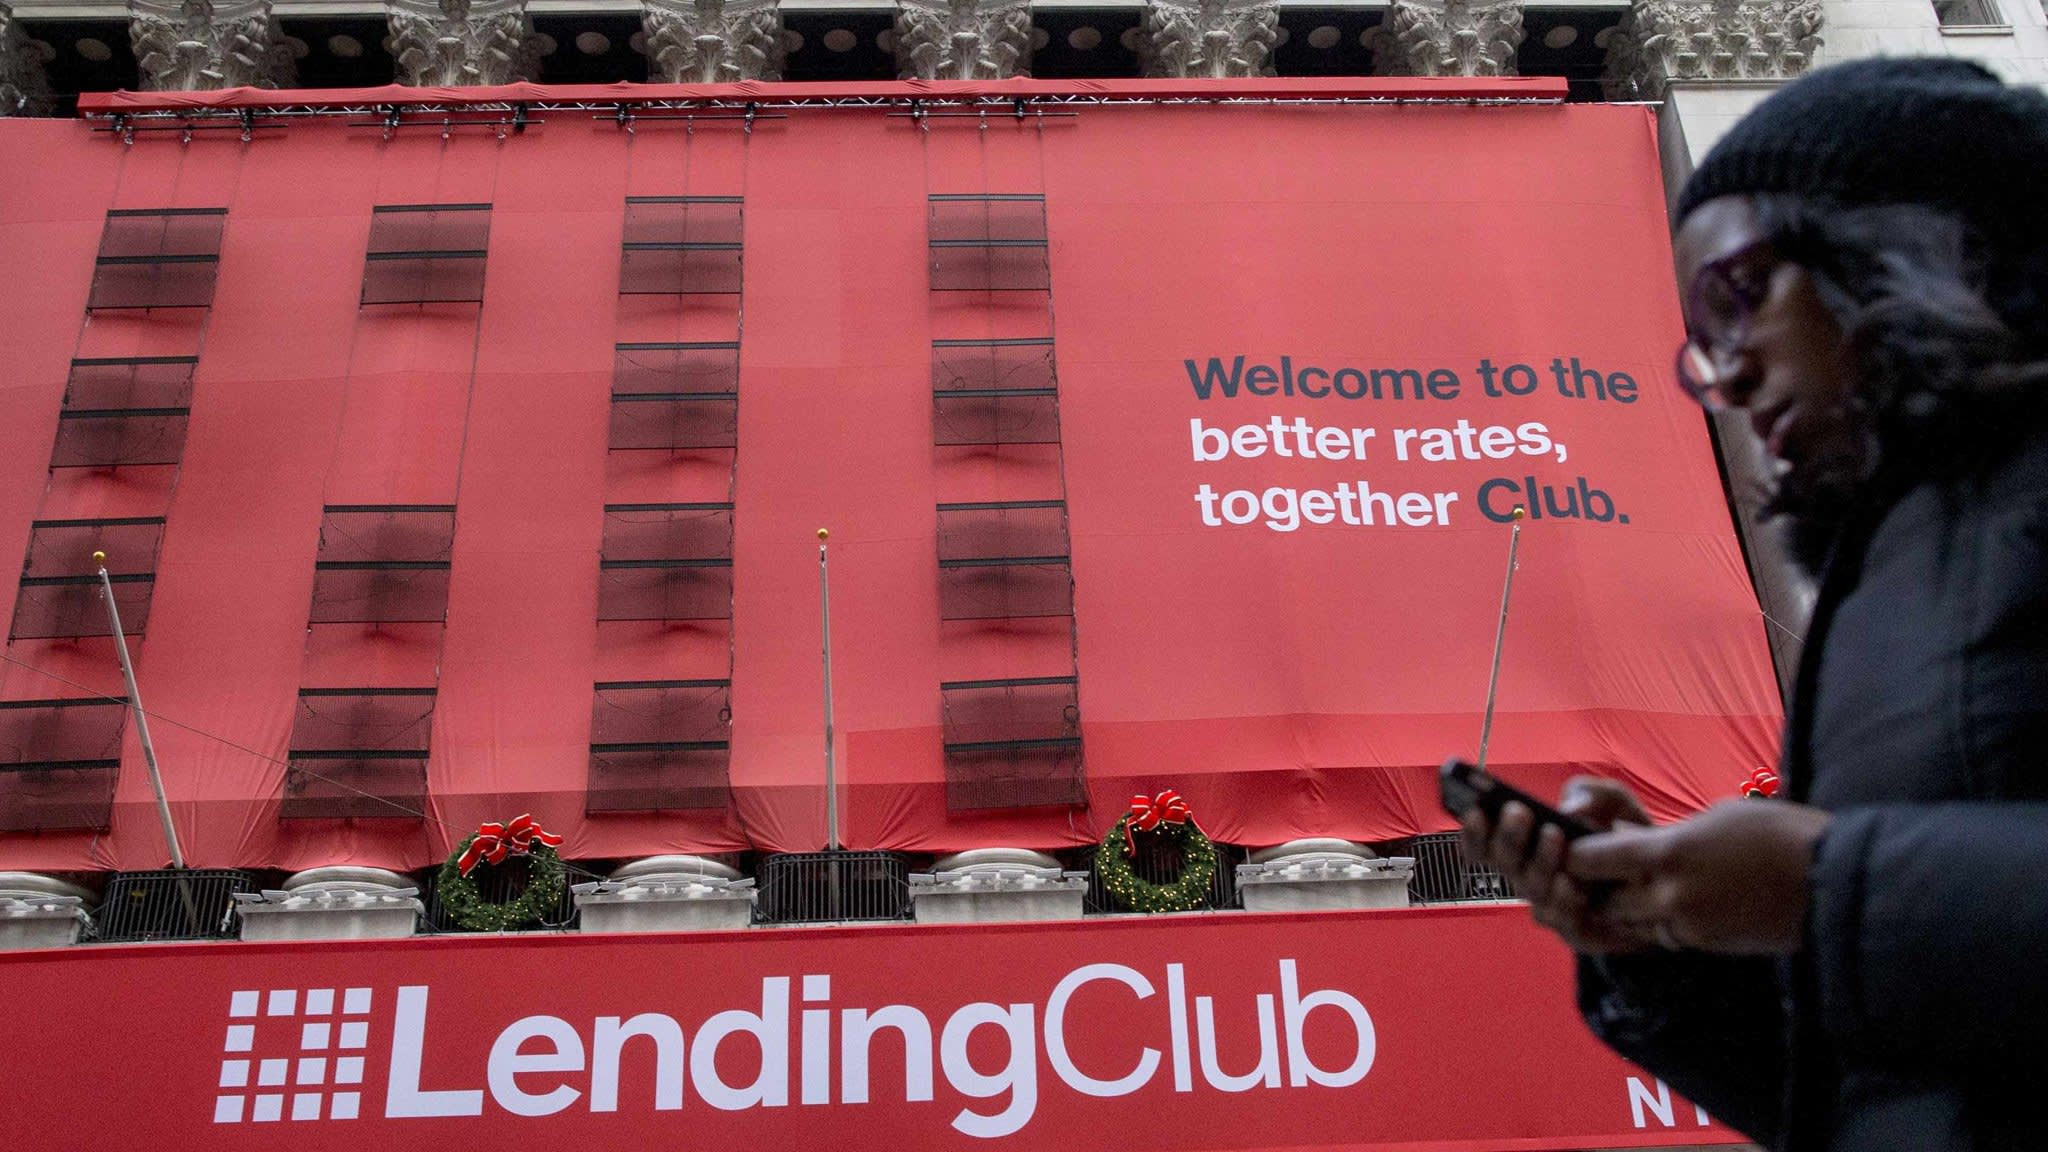 Lending Club extends losses for fourth straight year